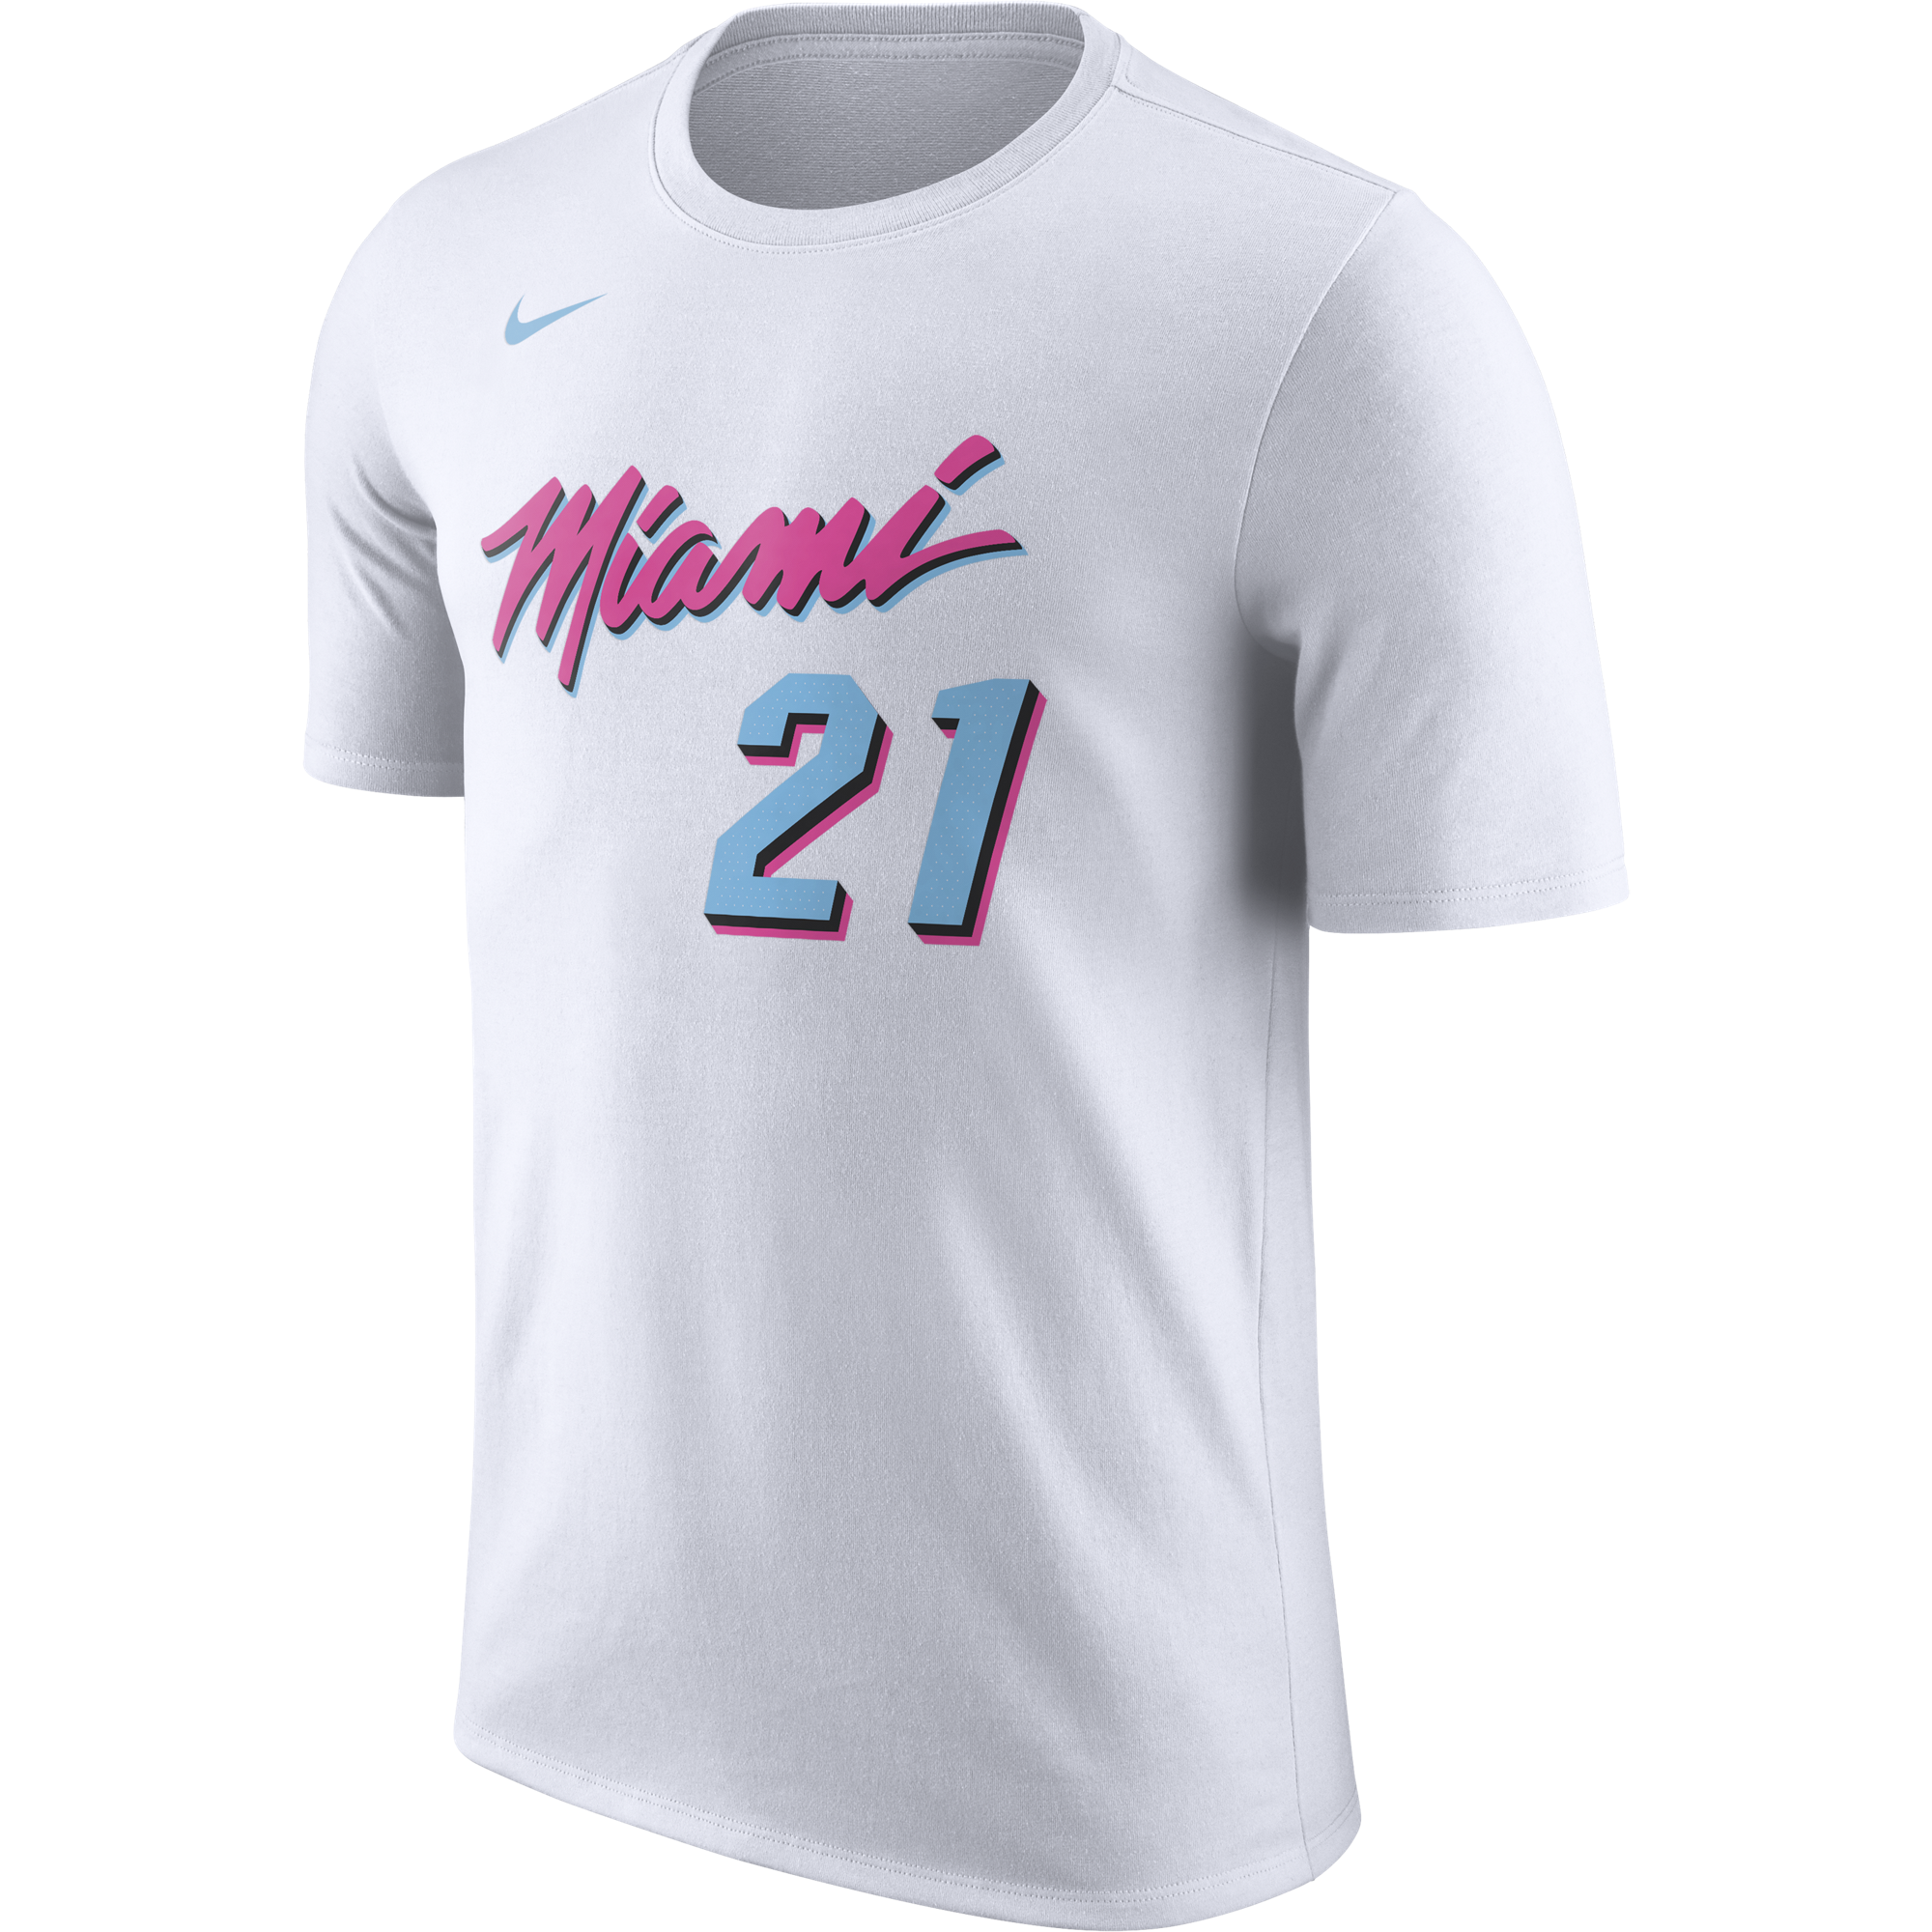 Hassan Whiteside Nike Miami HEAT Vice Uniform City Edition Name & Number  Tee - featured image